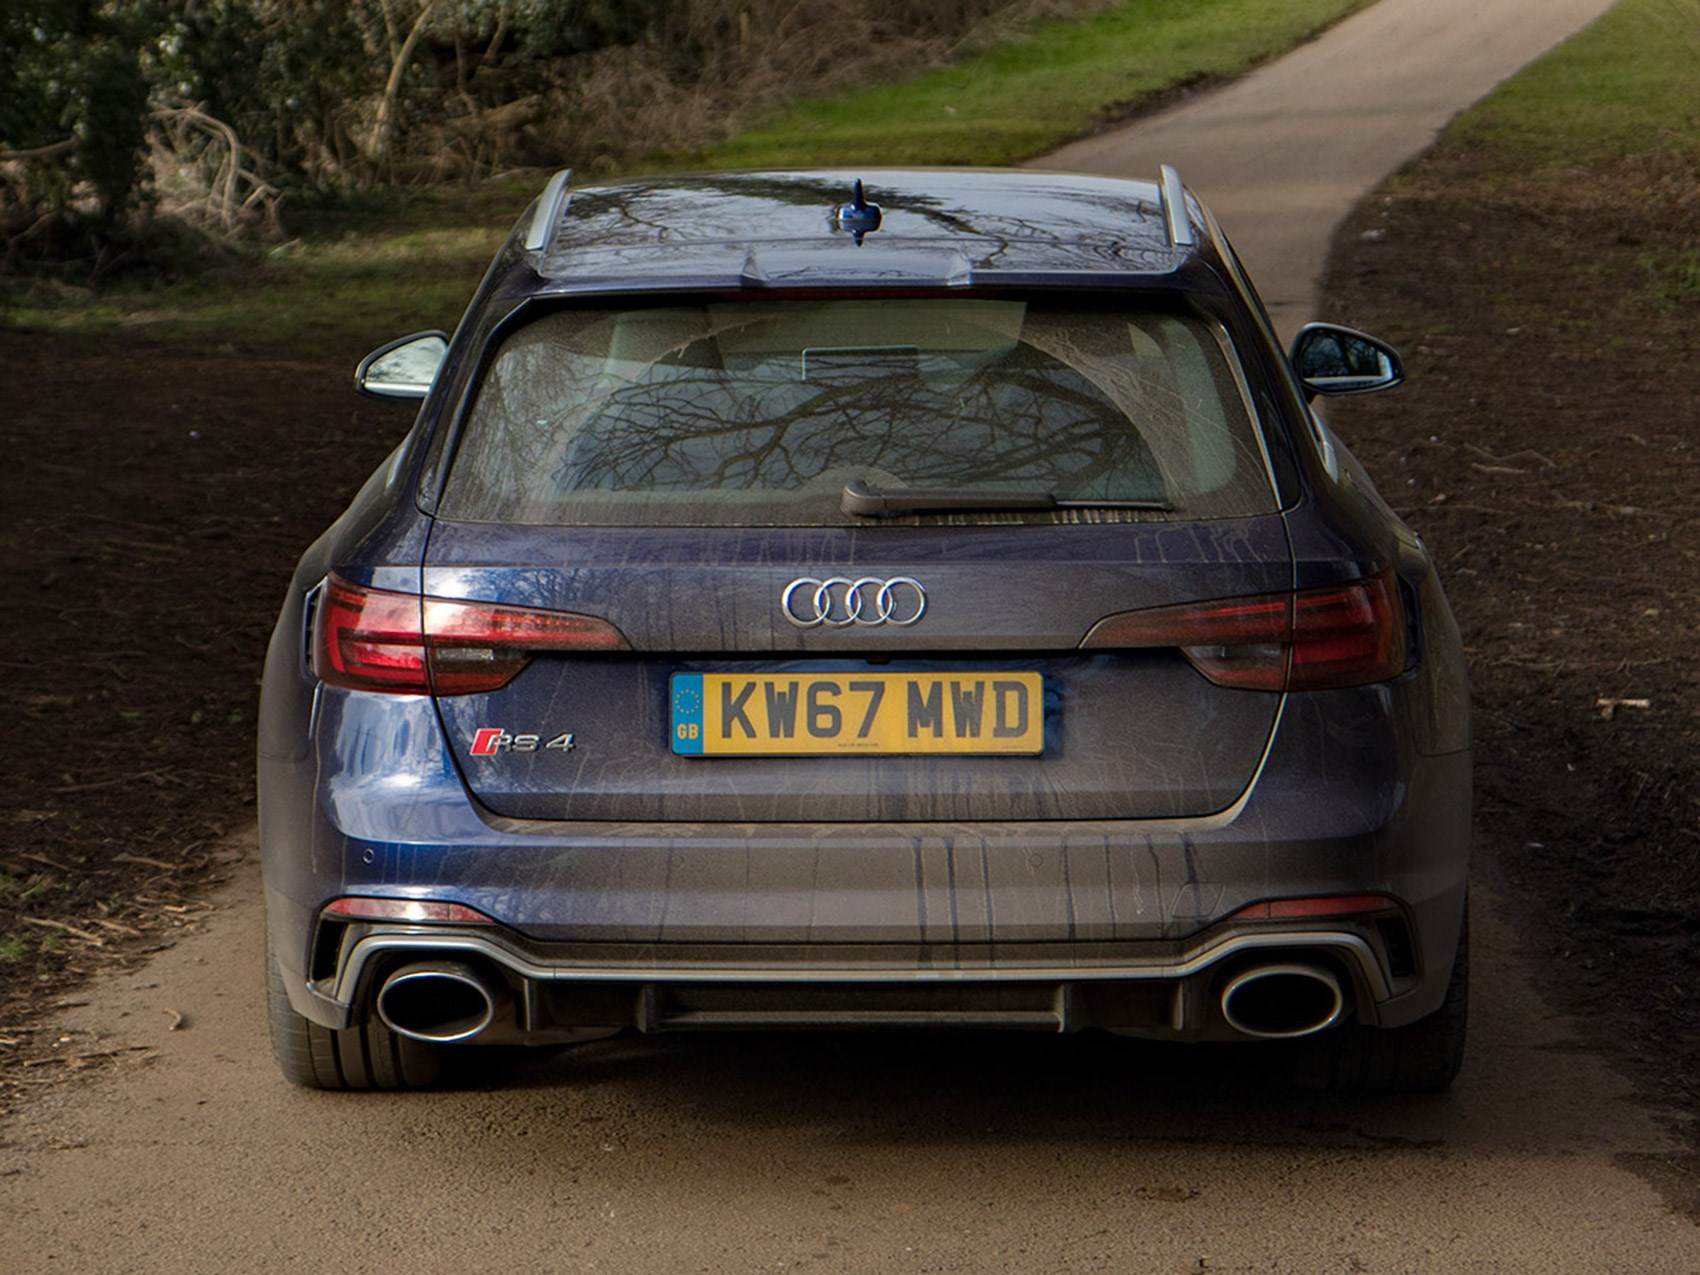 Audi RS4 specs: a 2.9-litre V6 bi-turbo, driving all four Quattro wheels